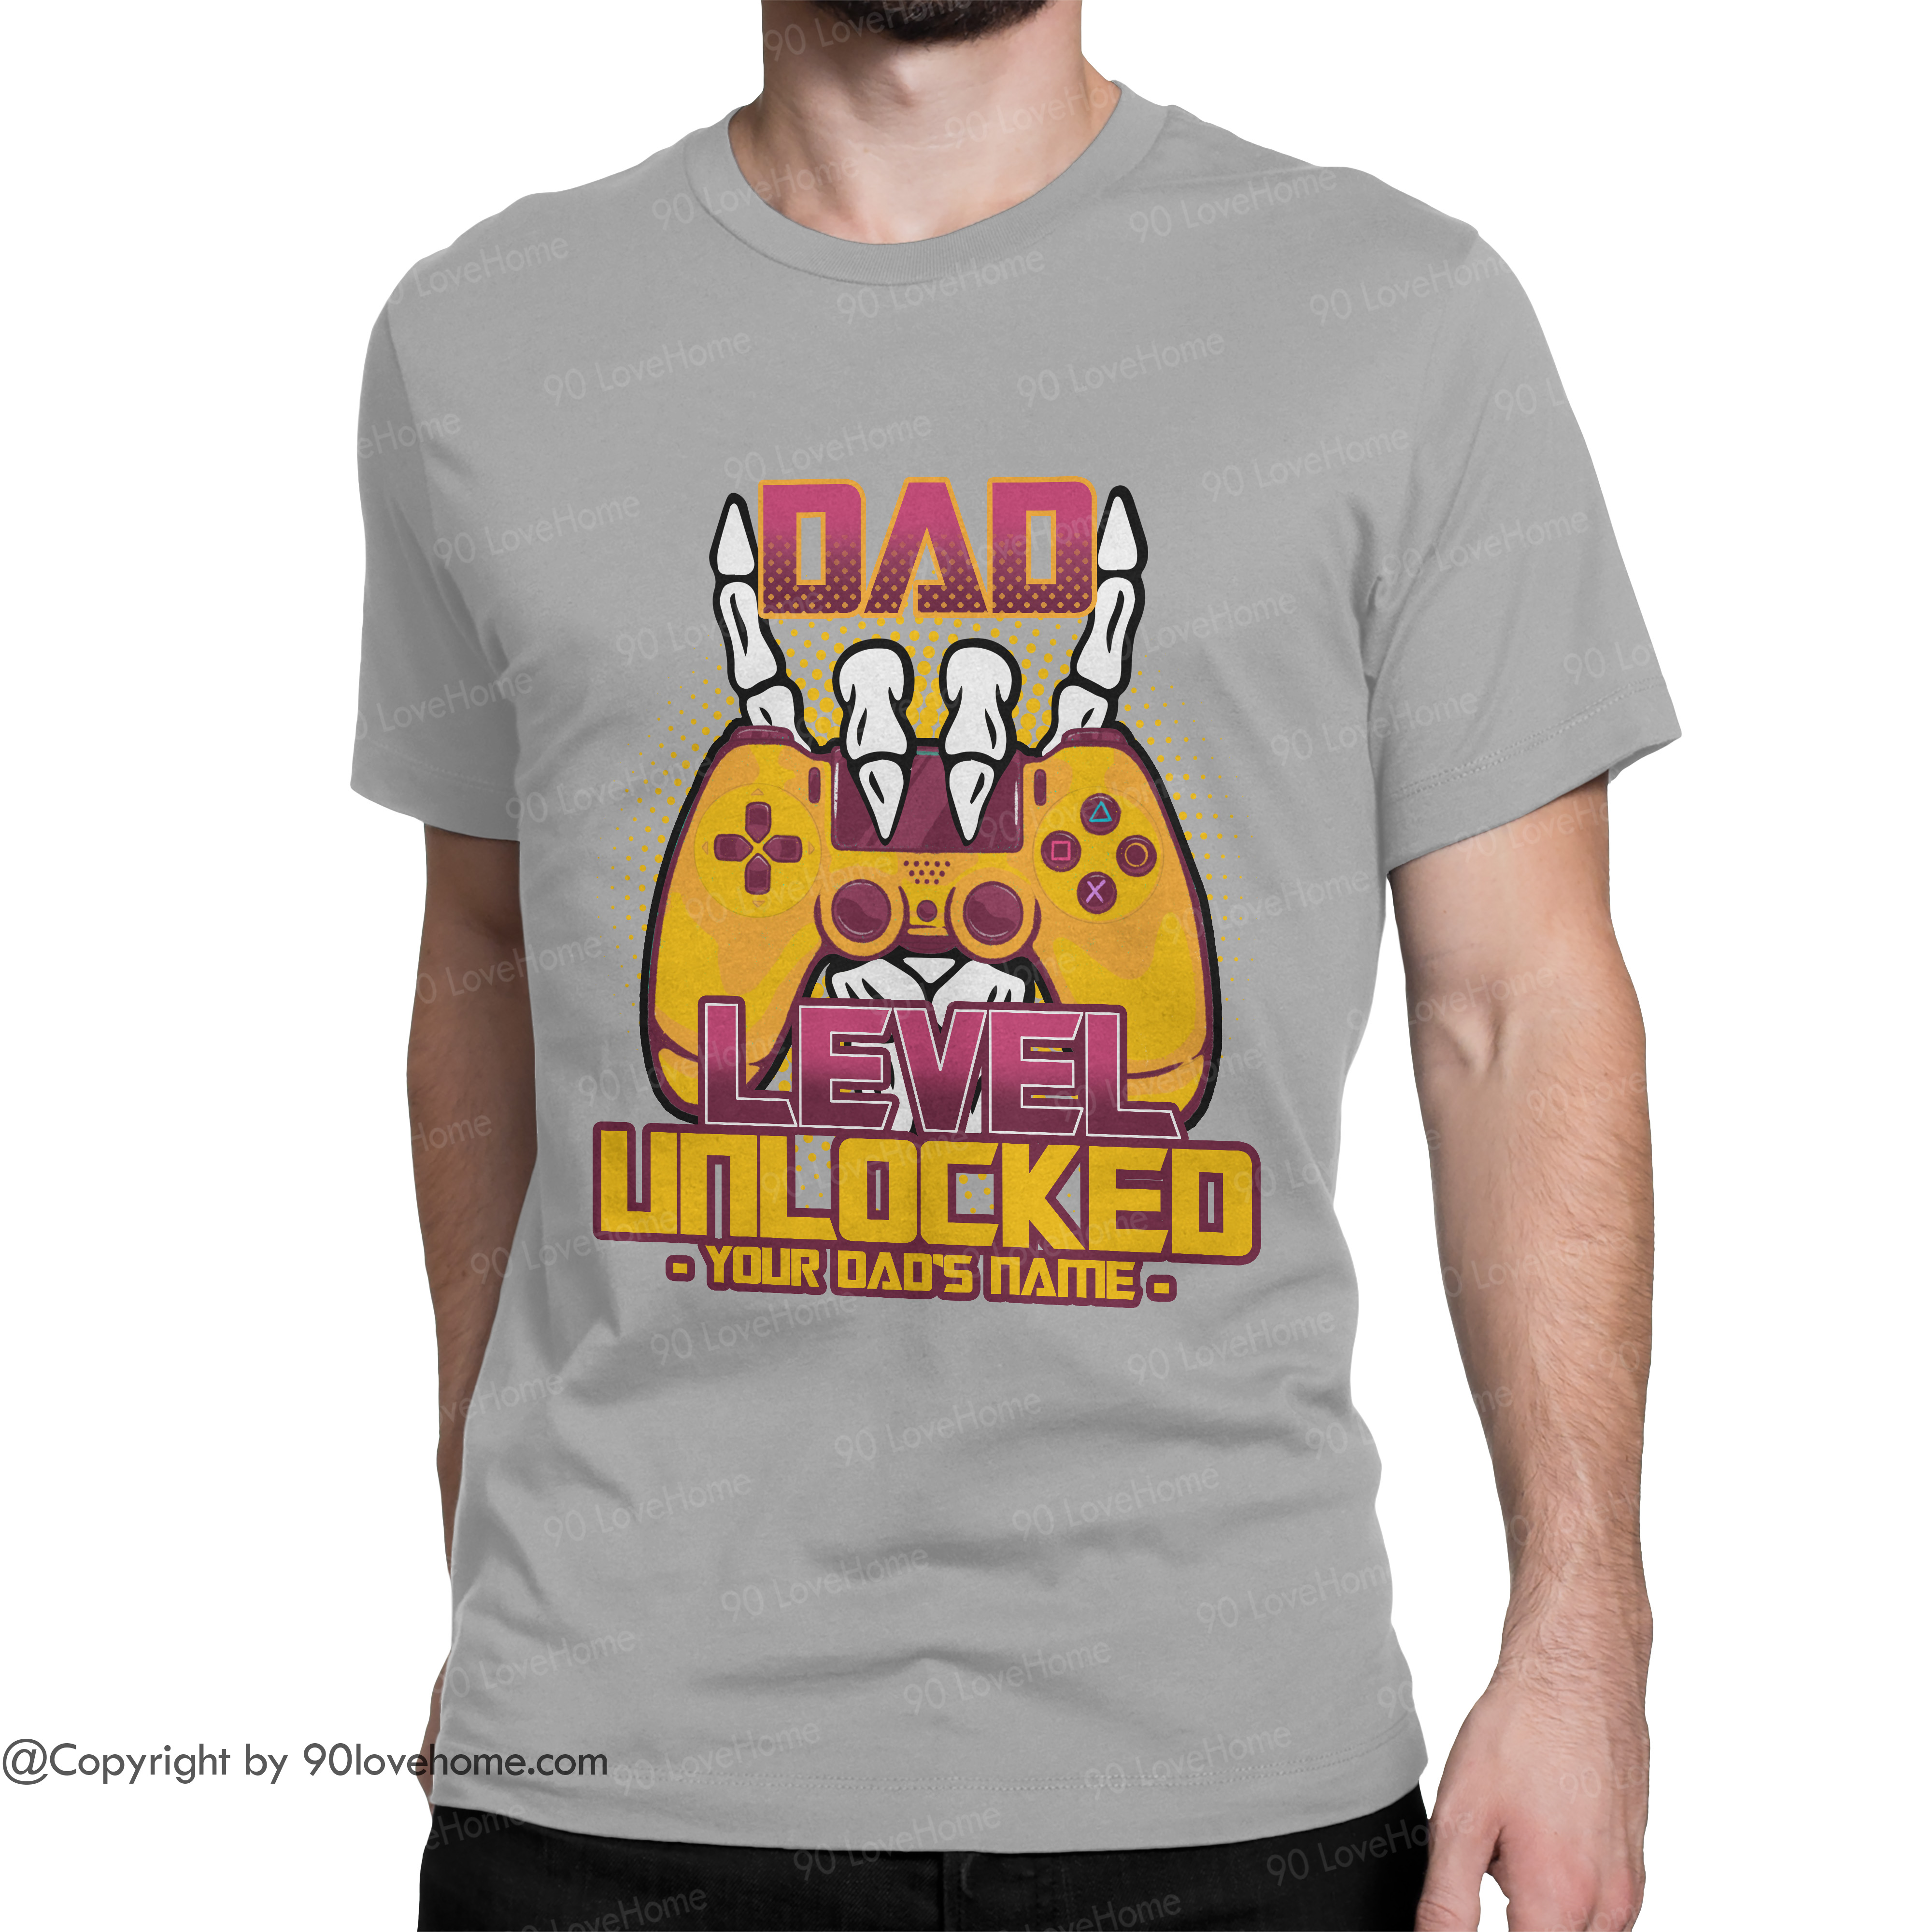 Customized Dad Level Unlocked Unisex T-shirt Future Expecting Daddy Tee Father's Day Birthday Gift For Dad 90LoveHome